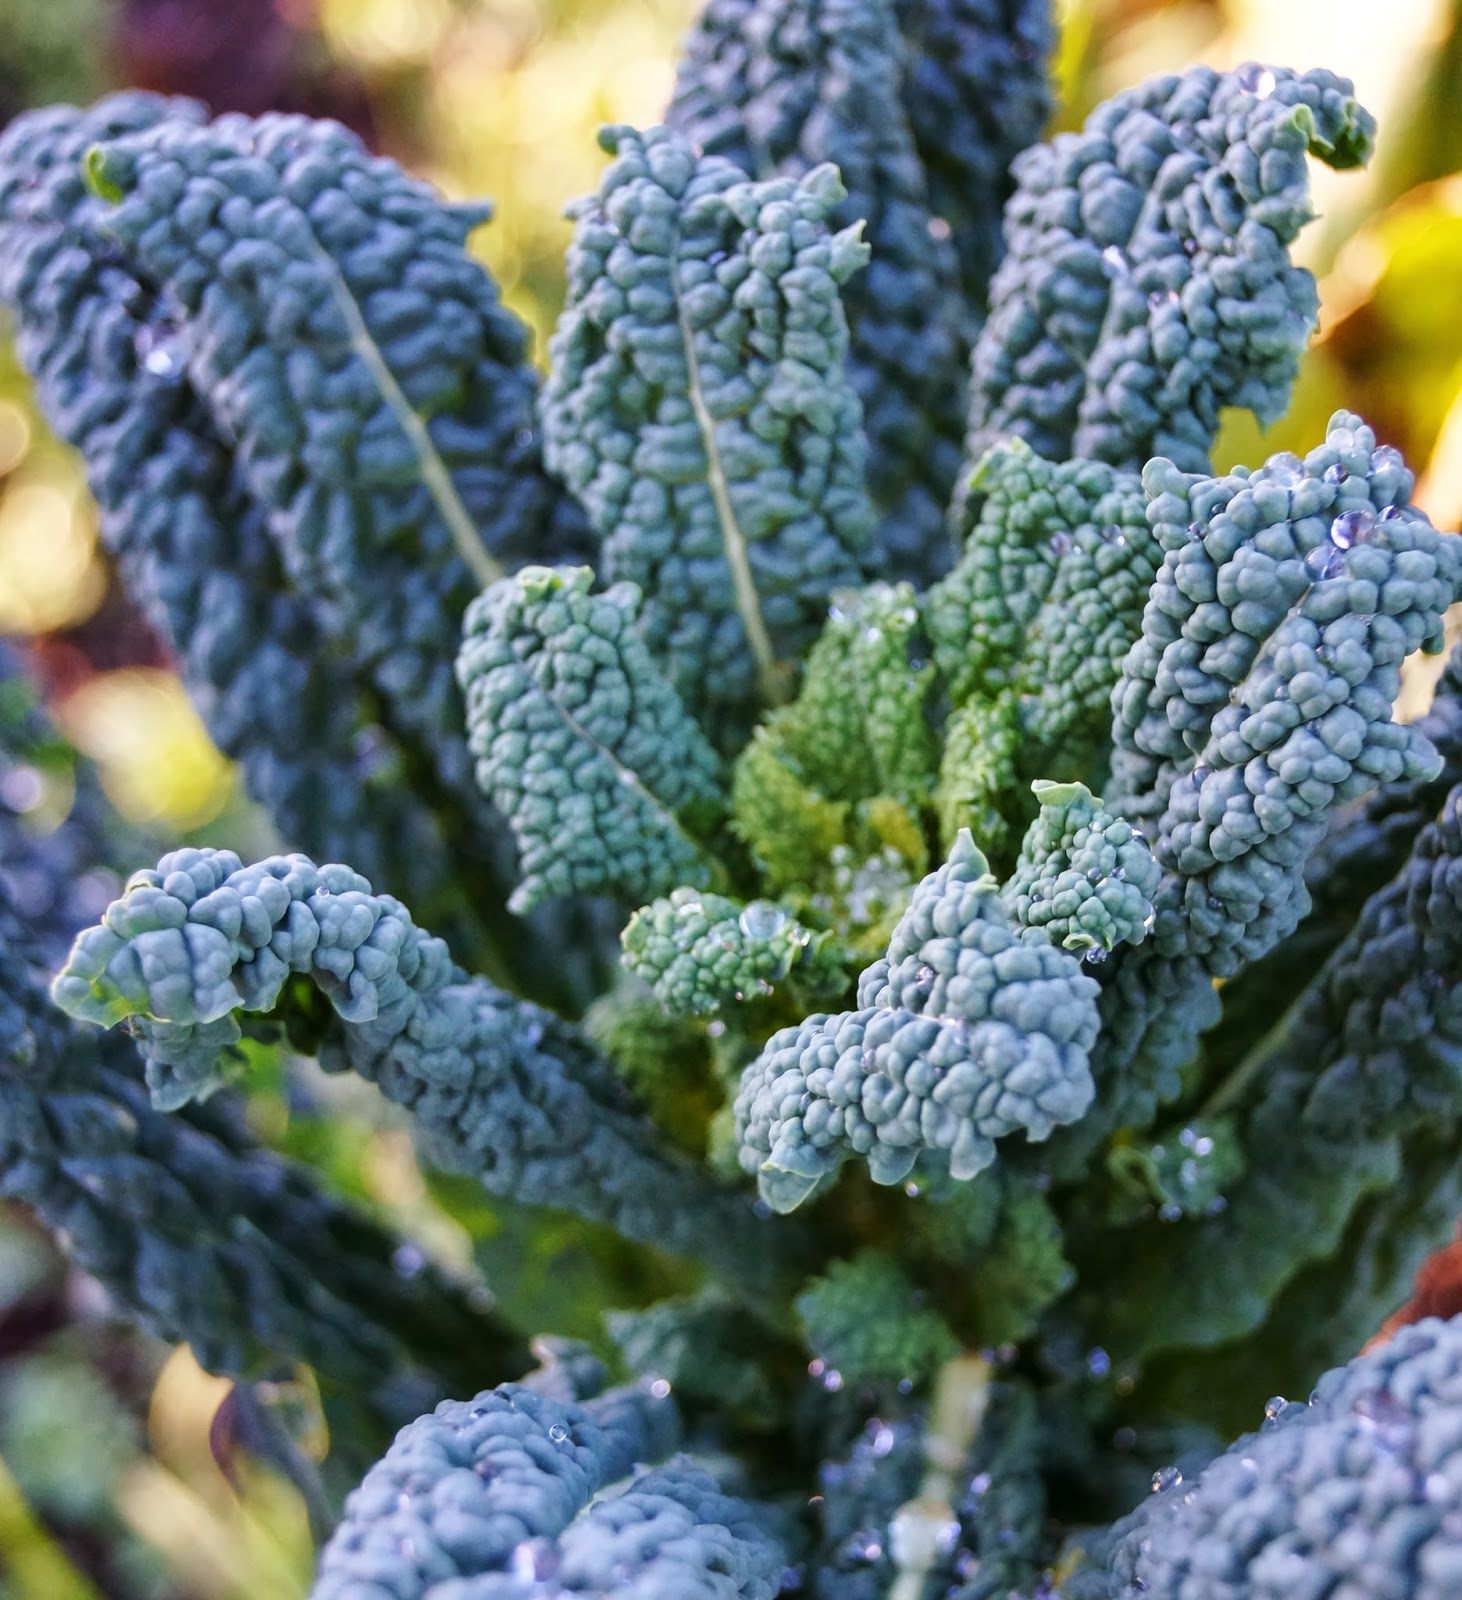 More yummy healthy Kale - 'Grow Our Own' Allotment Blog